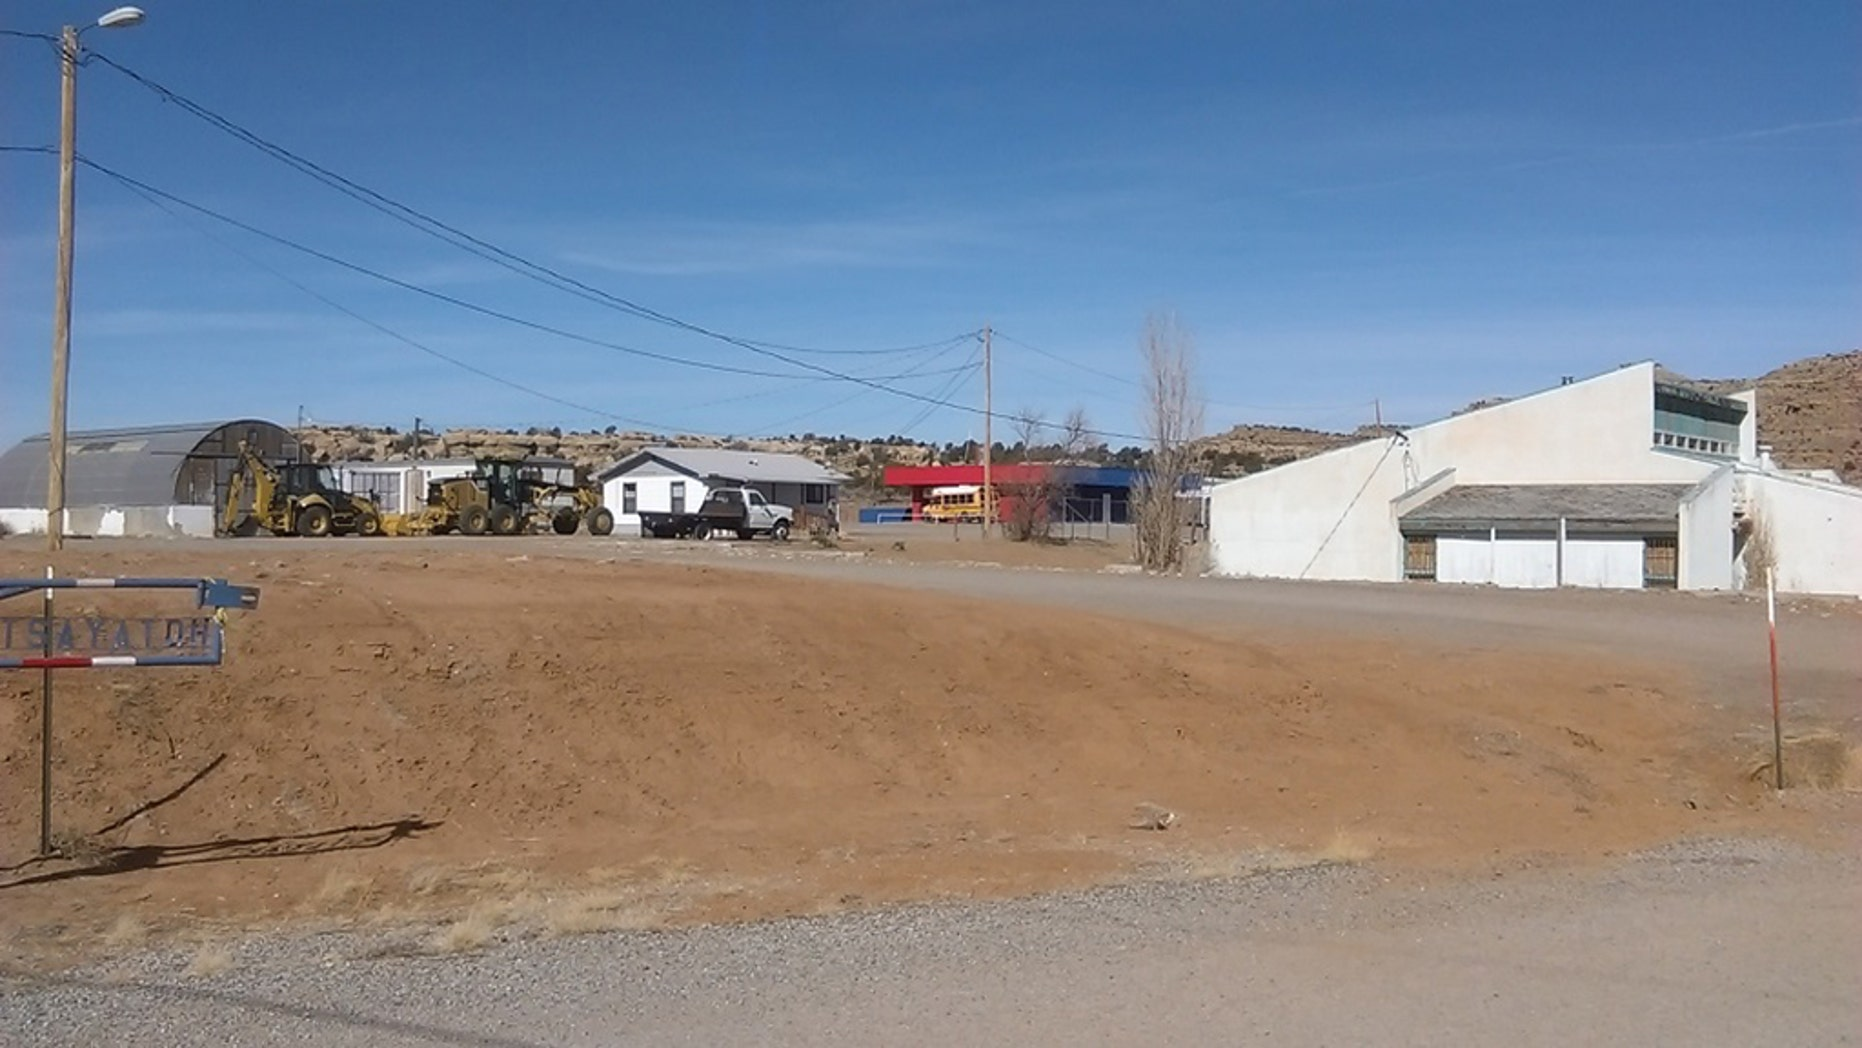 The apparent murder-suicide took place on the Tsayotah Charter in the Northwestern region of New Mexico.